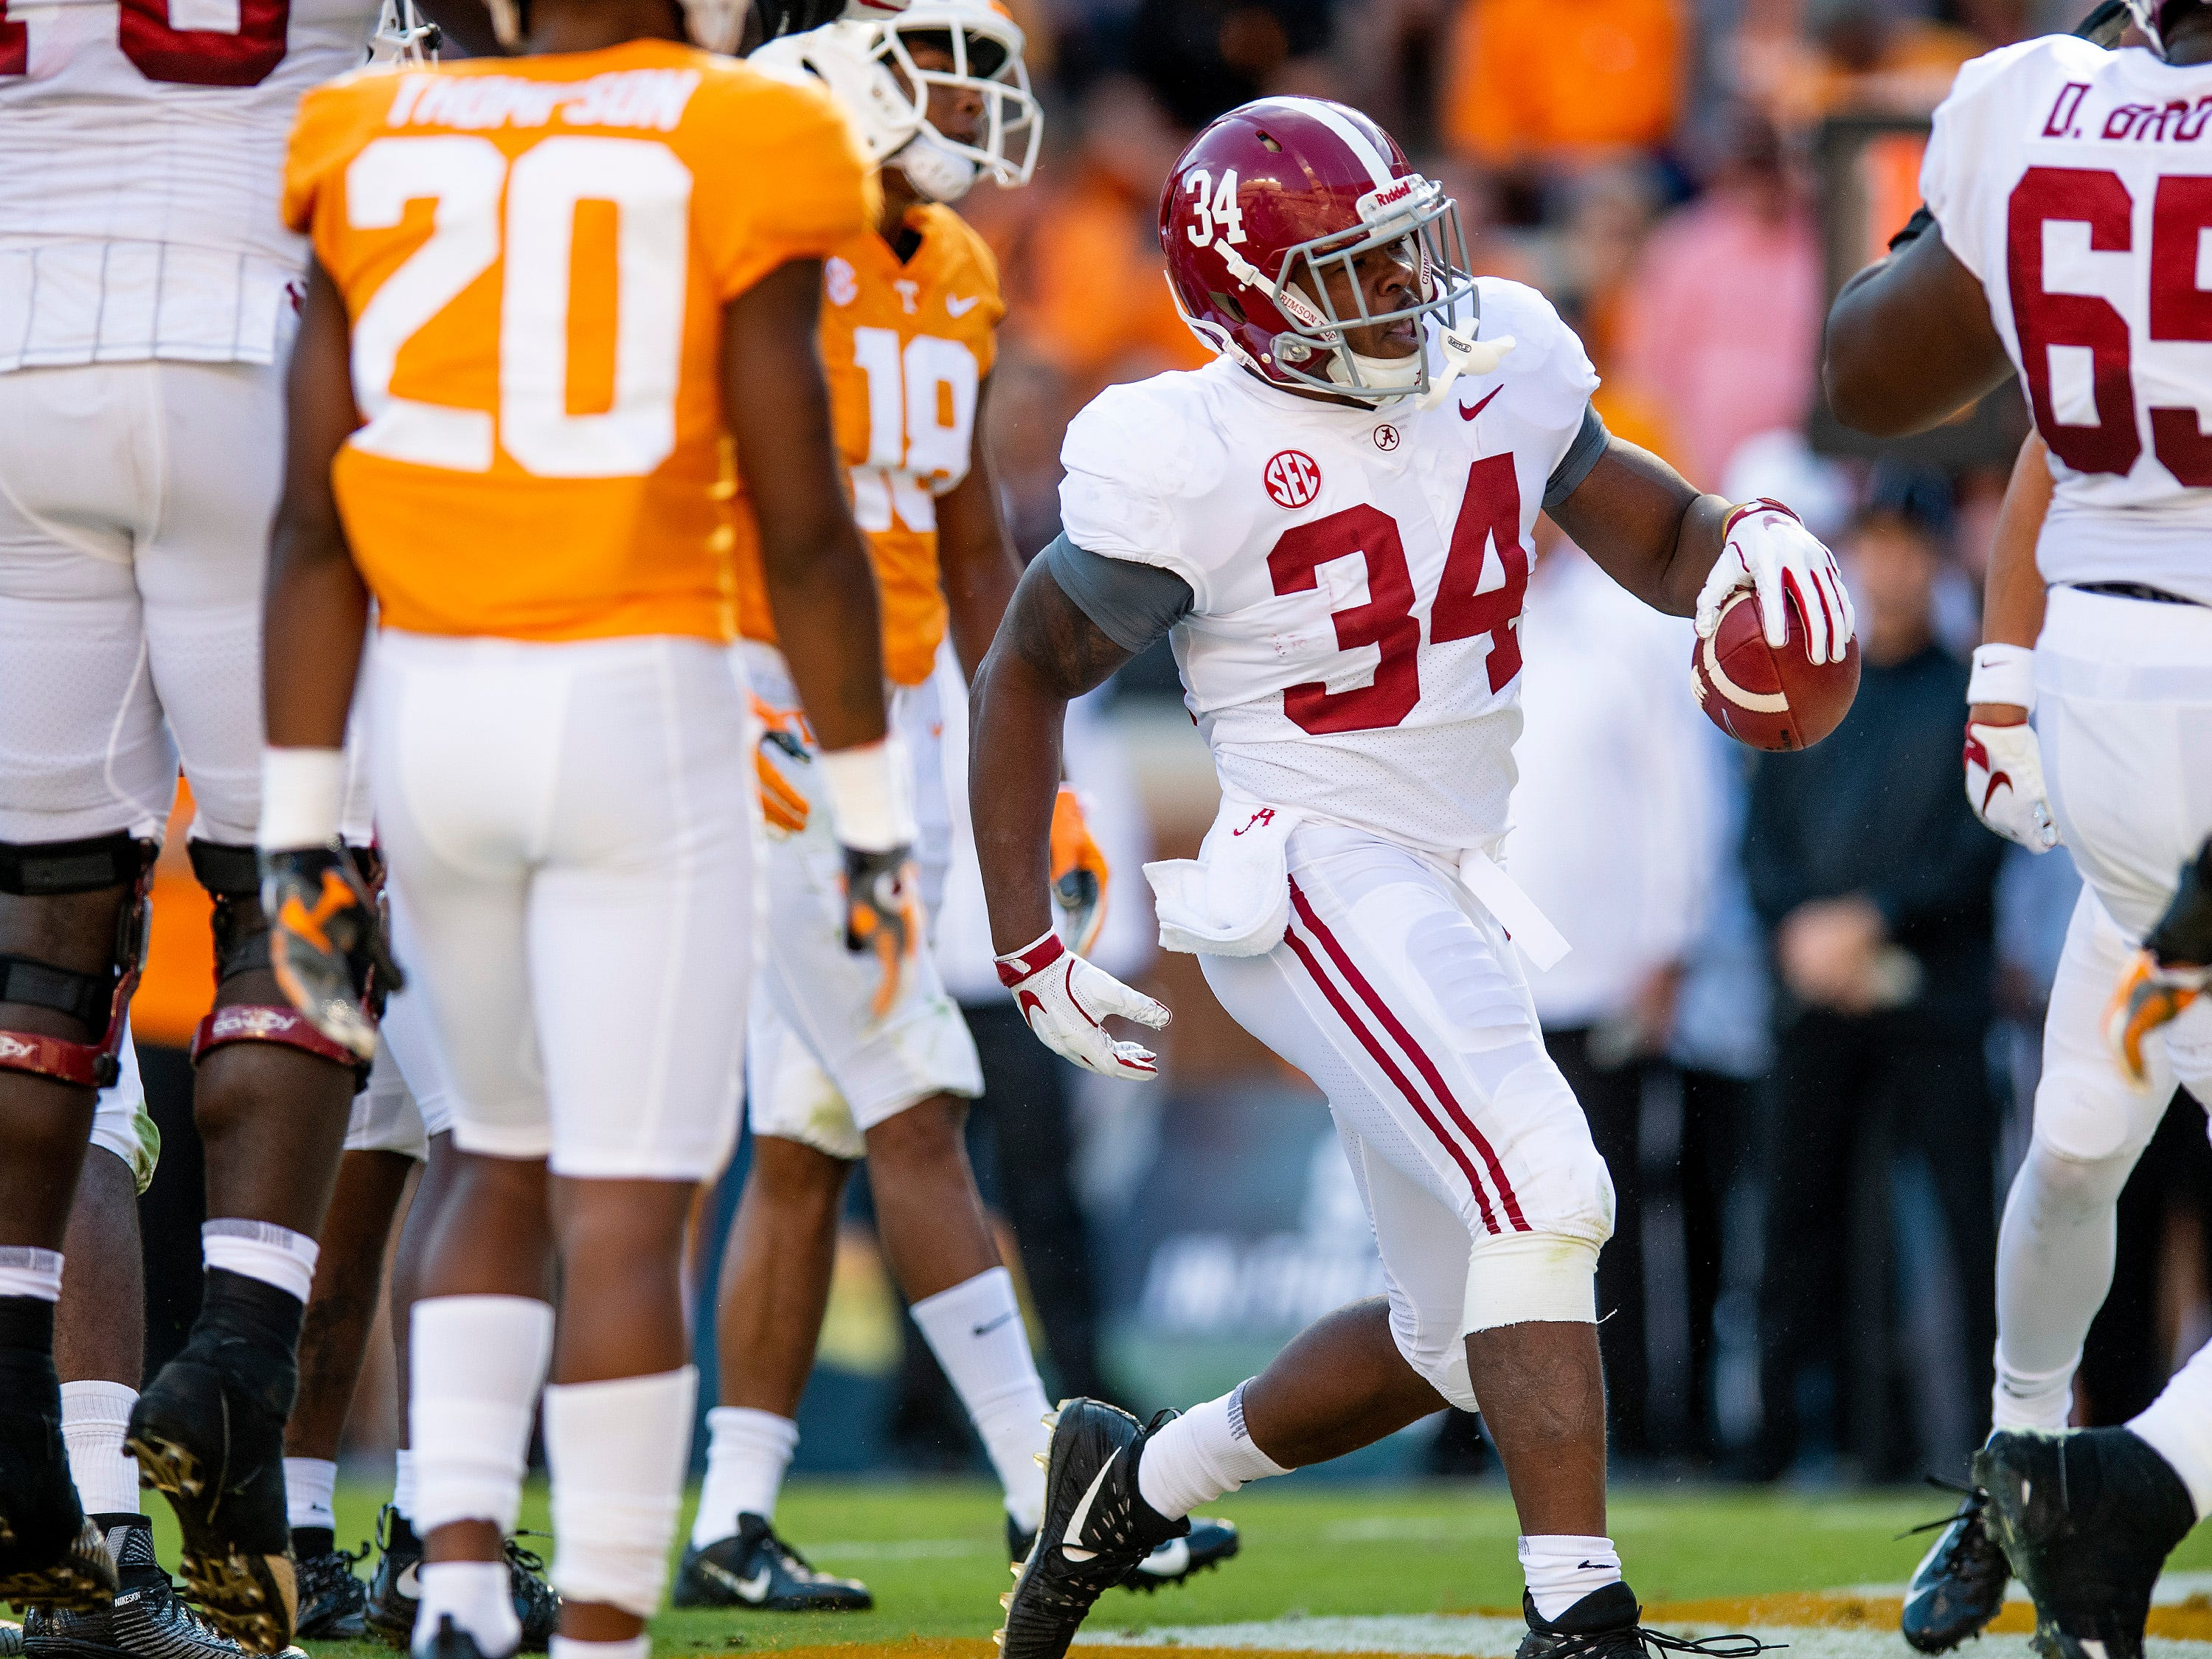 Alabama running back Damien Harris (34) scores a touchdown against Tennessee in first half action at Neyland Stadium in Knoxville, Tn., on Saturday October 20, 2018.